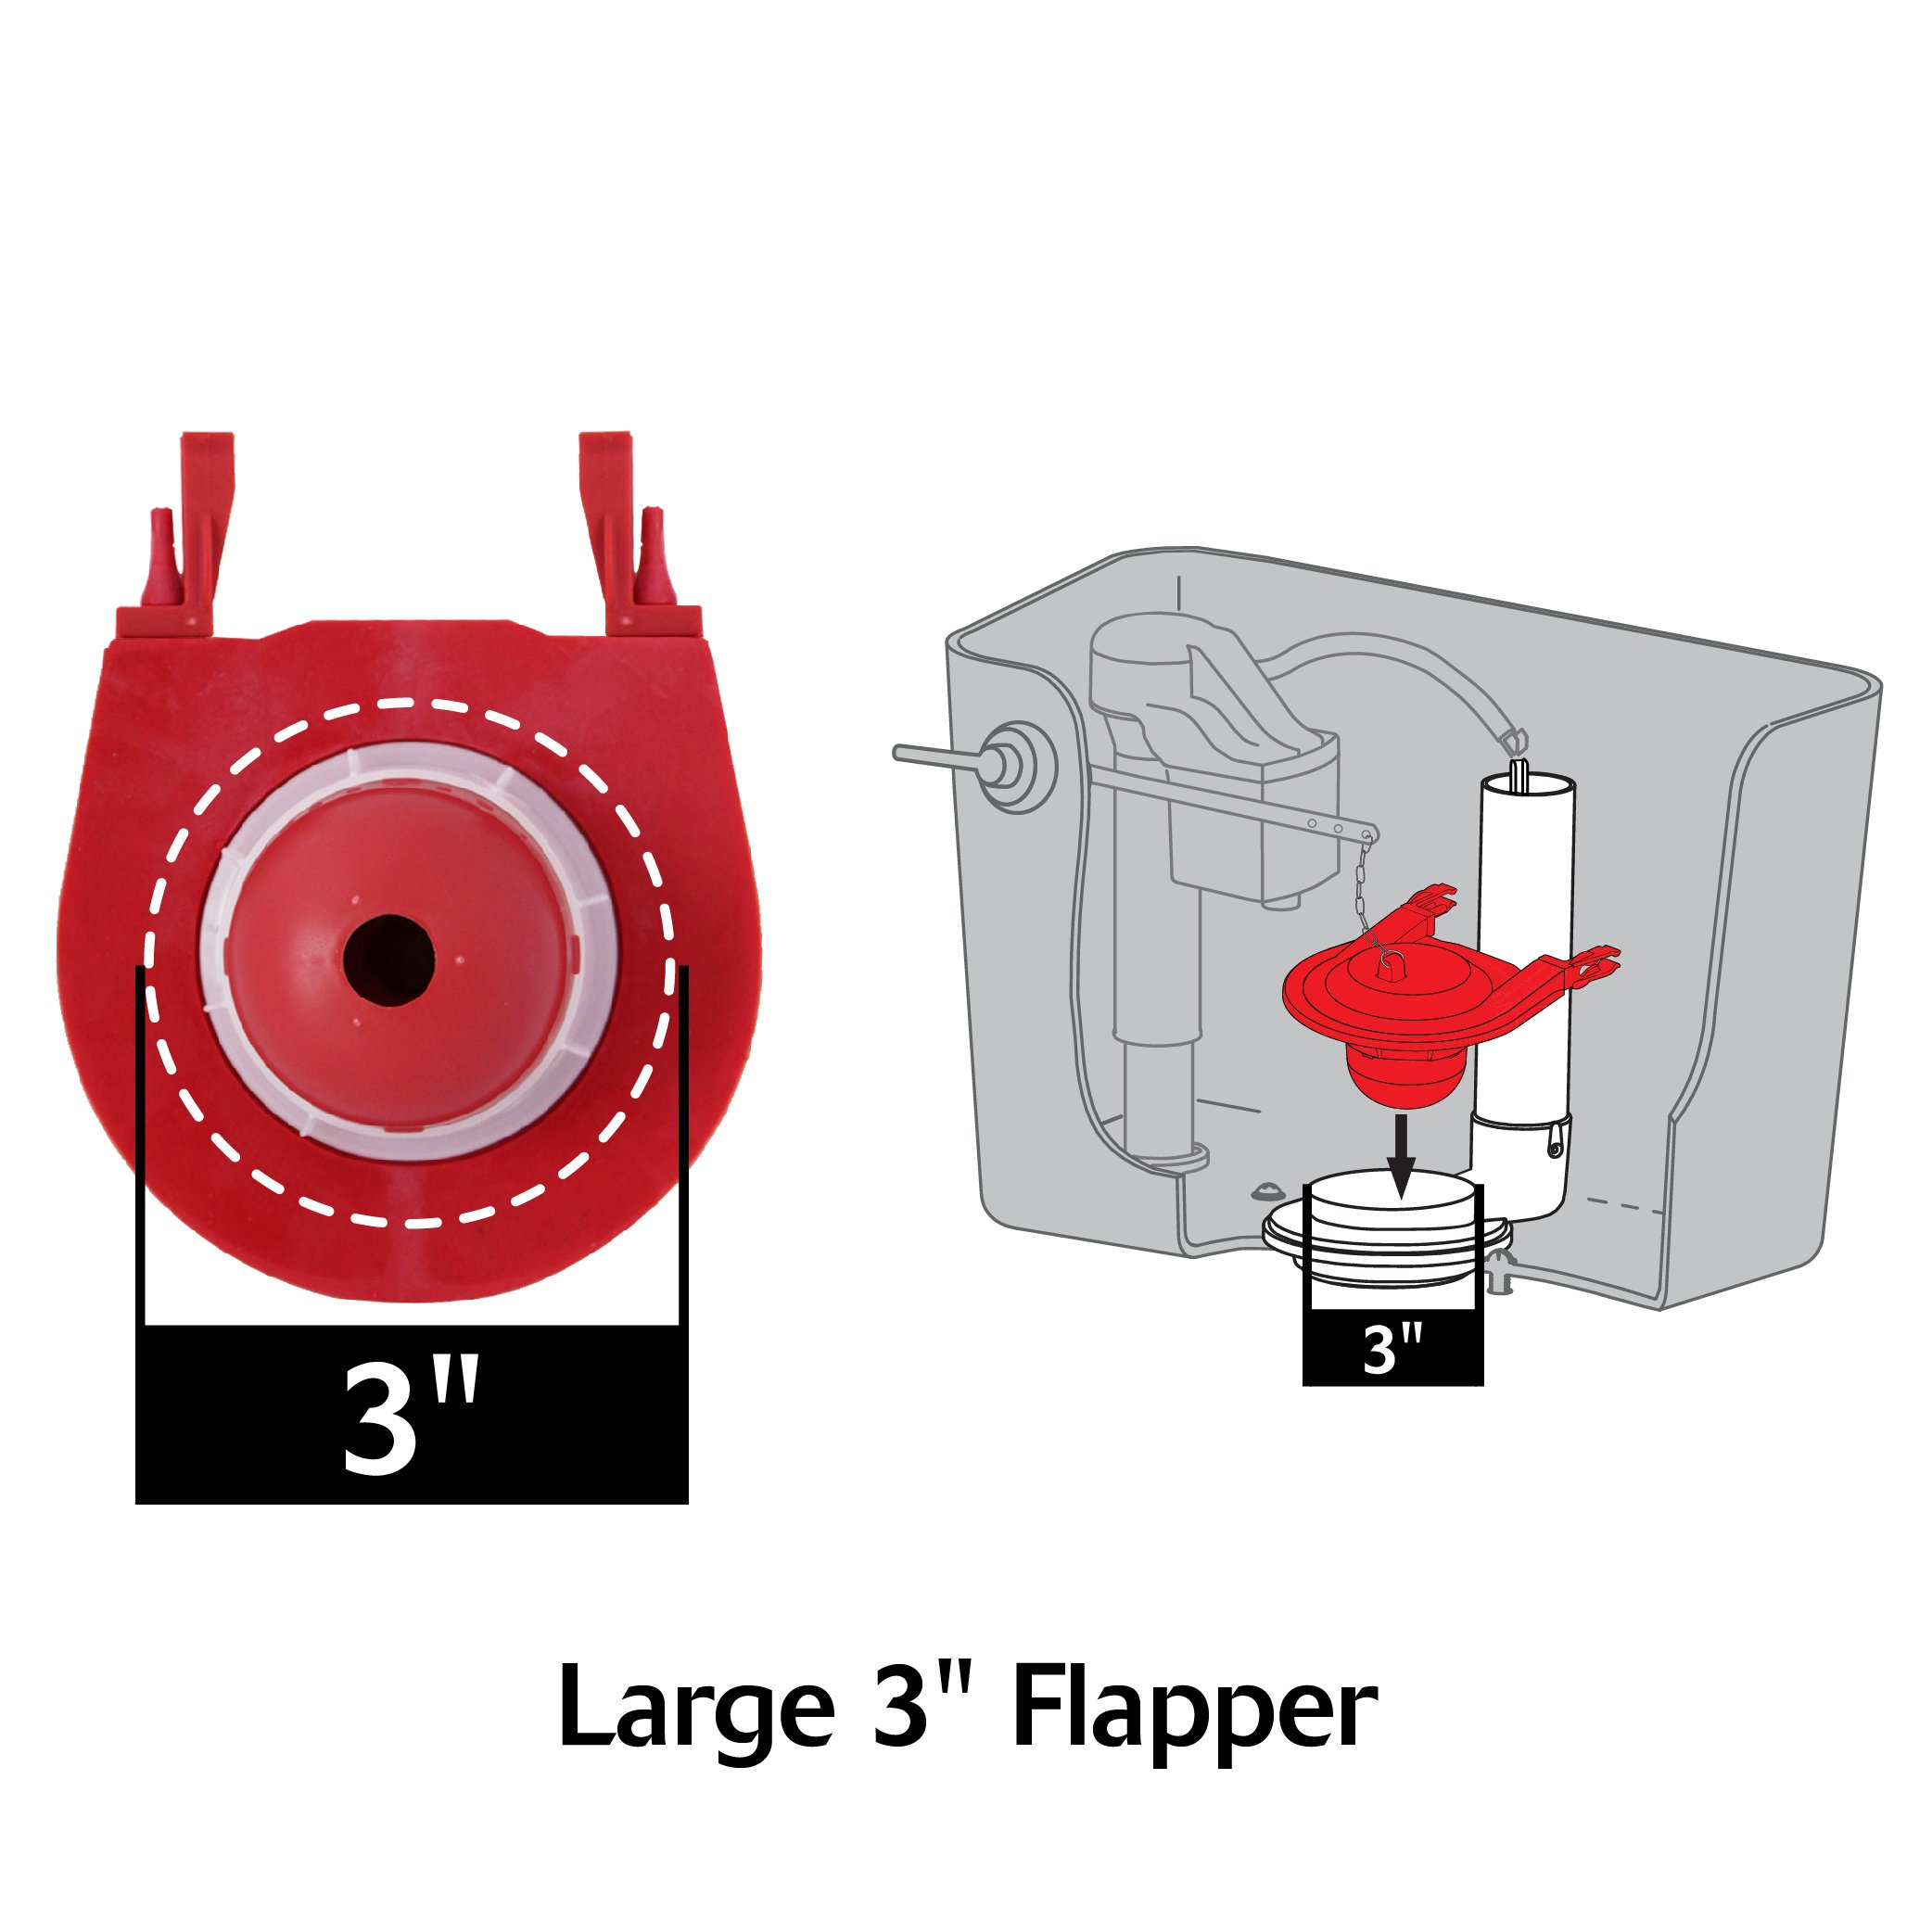 Korky 3060BP Universal Toilet Flapper Replaces Most 3-Inch Flappers - Long  Lasting Rubber - Easy to Install - Made in USA